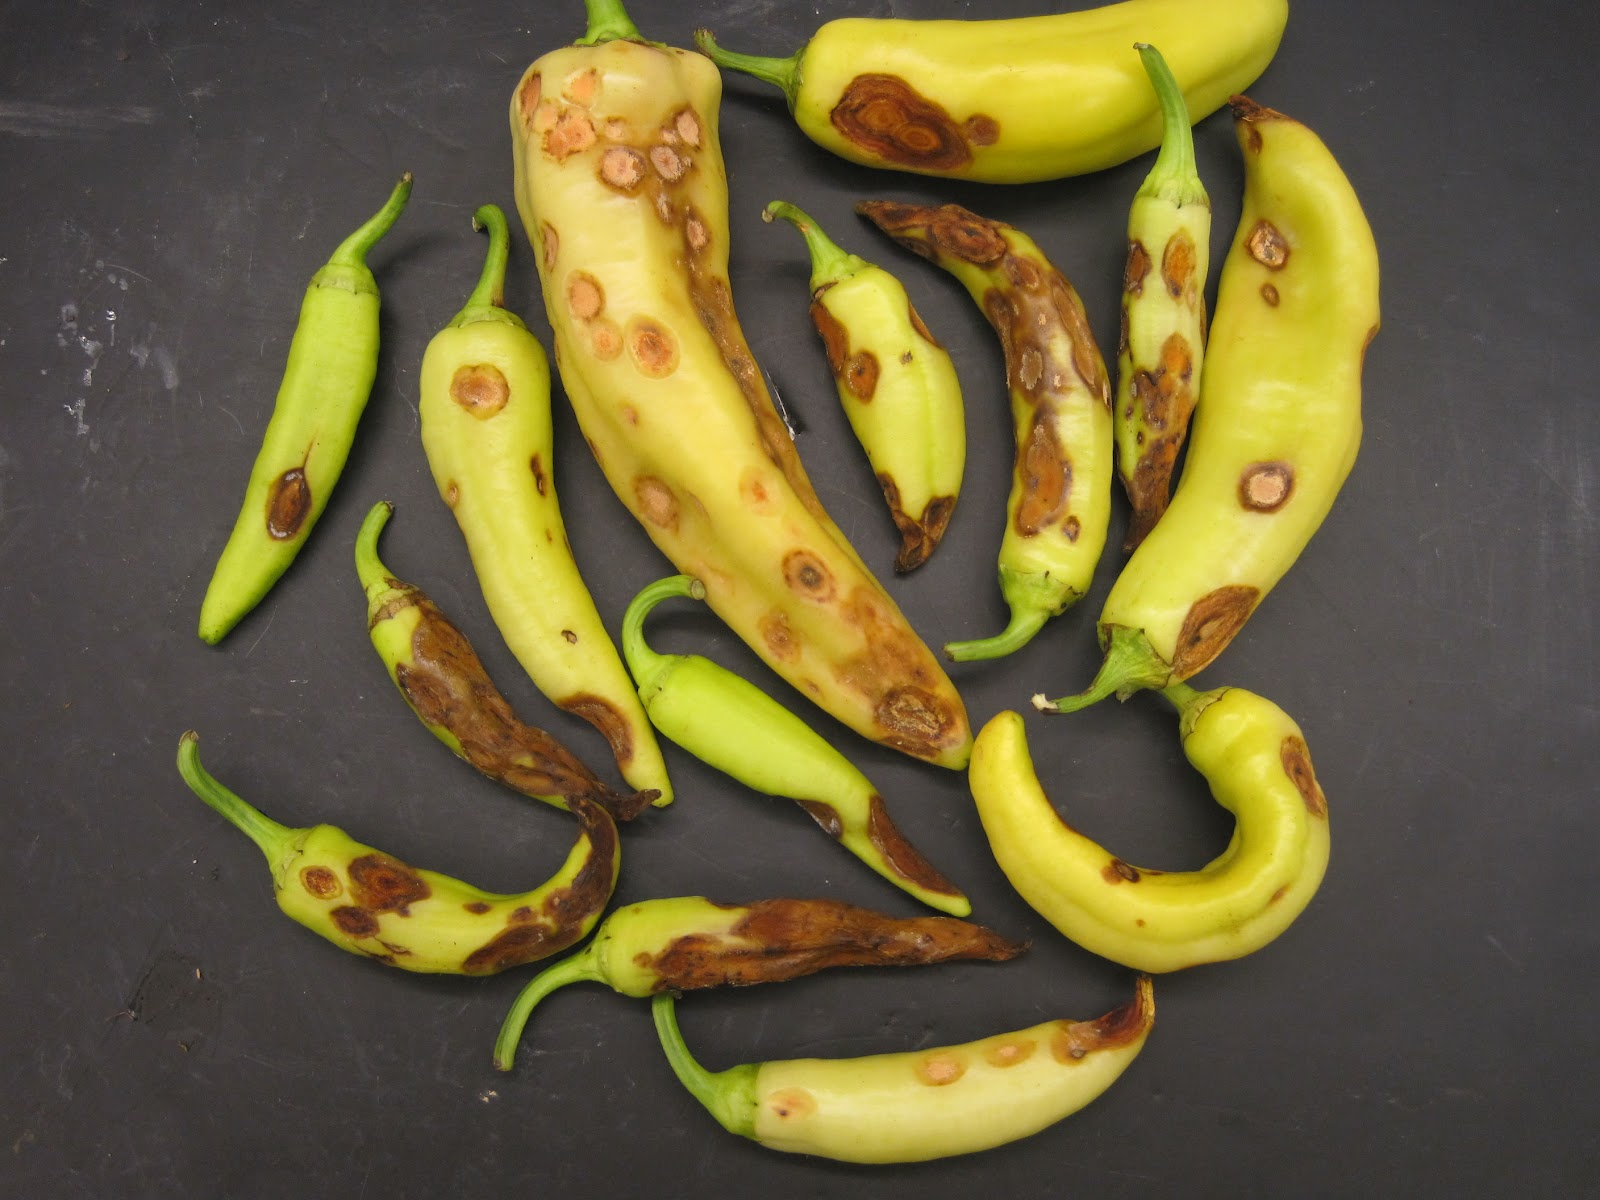 Ncsu pdic august 2012 - How to can banana peppers from your garden ...